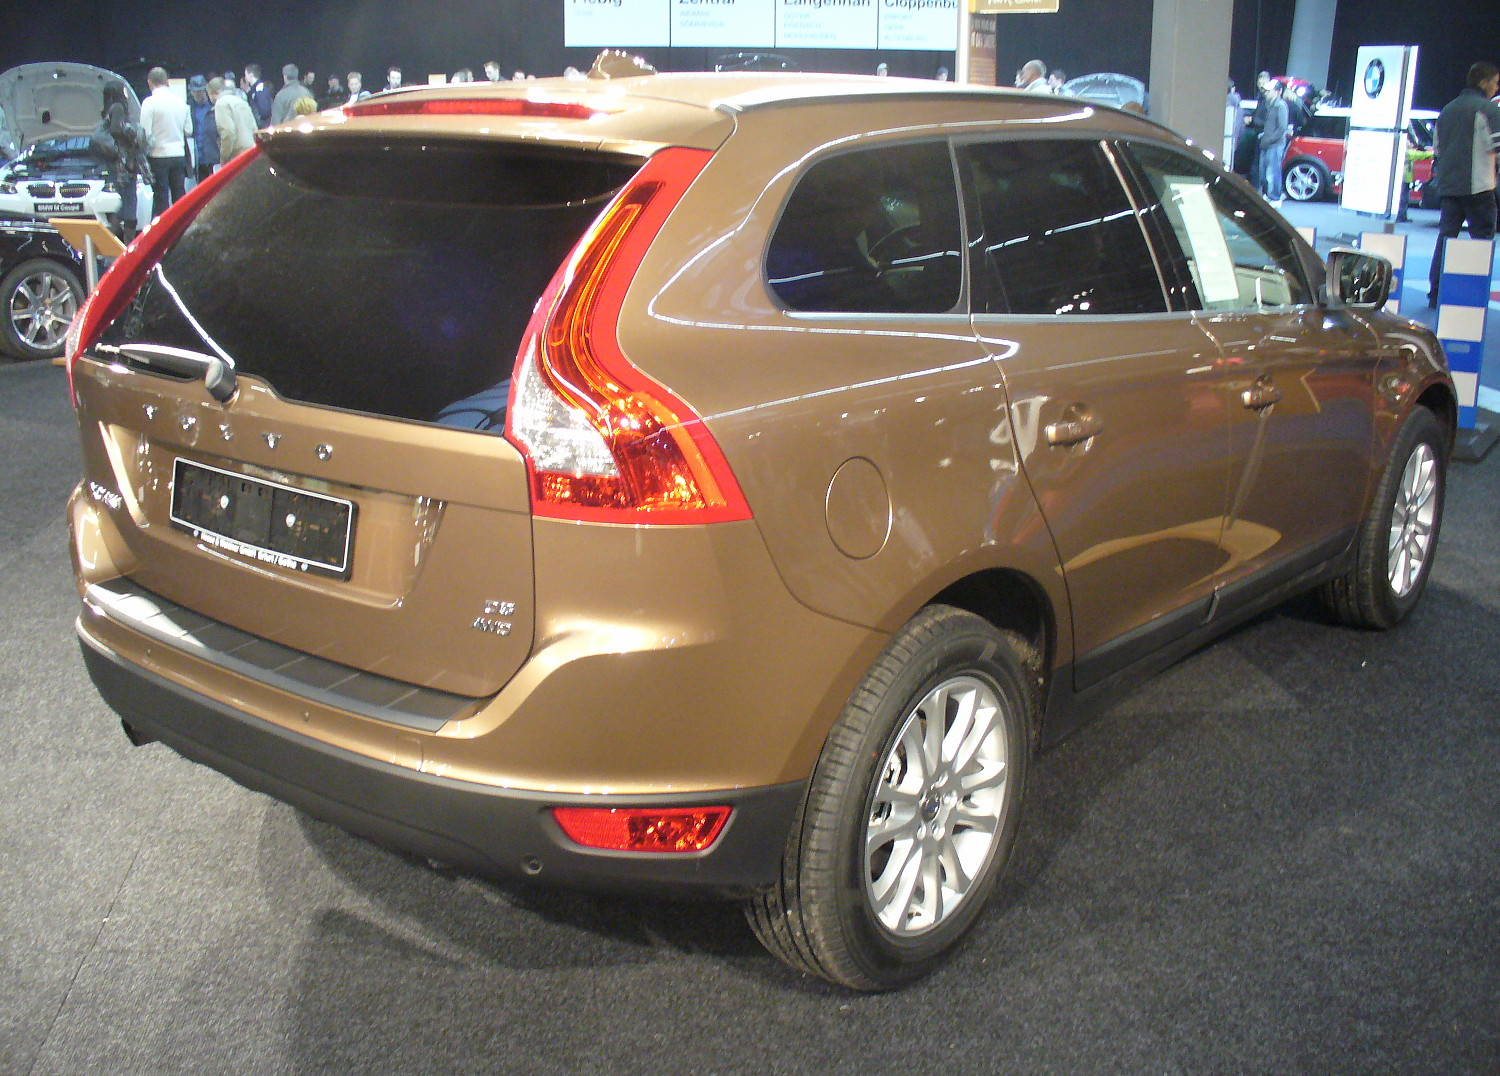 File Volvo Xc60 D5 Awd Heck Jpg Wikimedia Commons